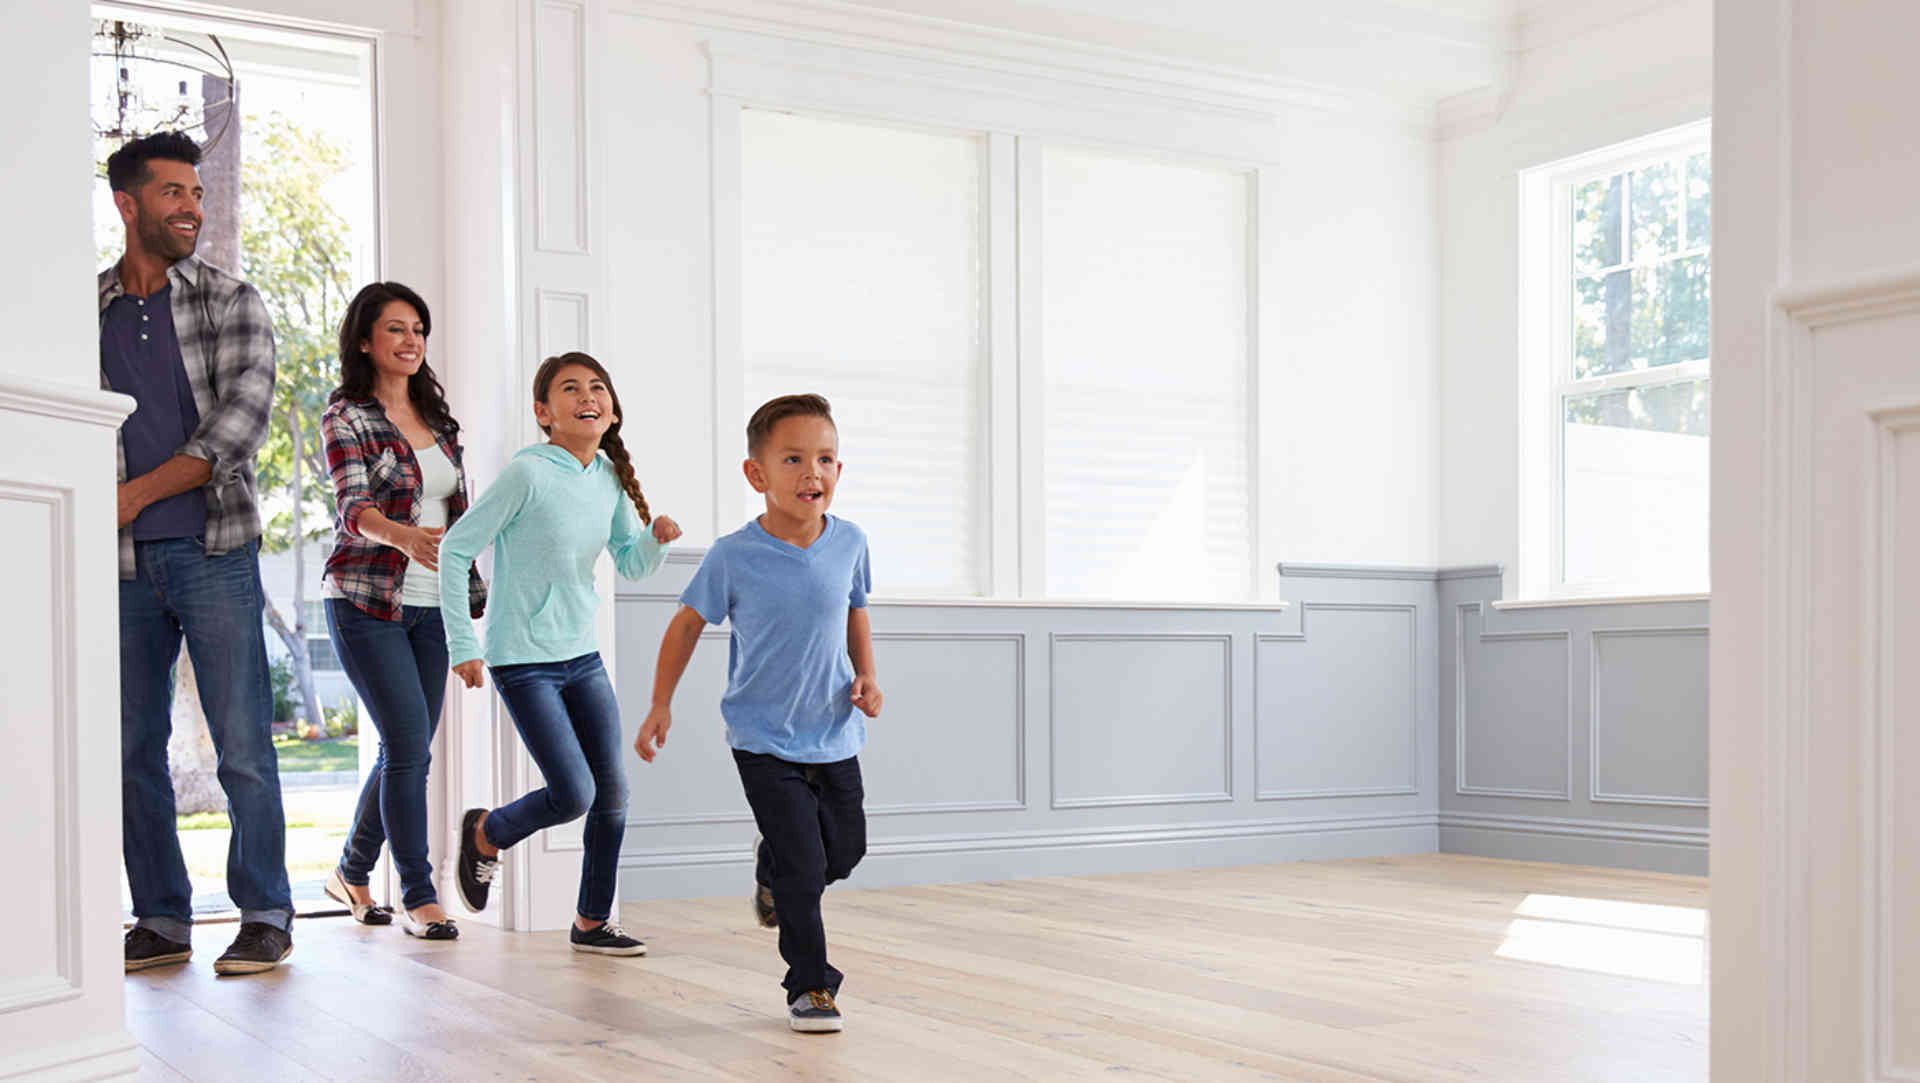 Family Entering Home Image